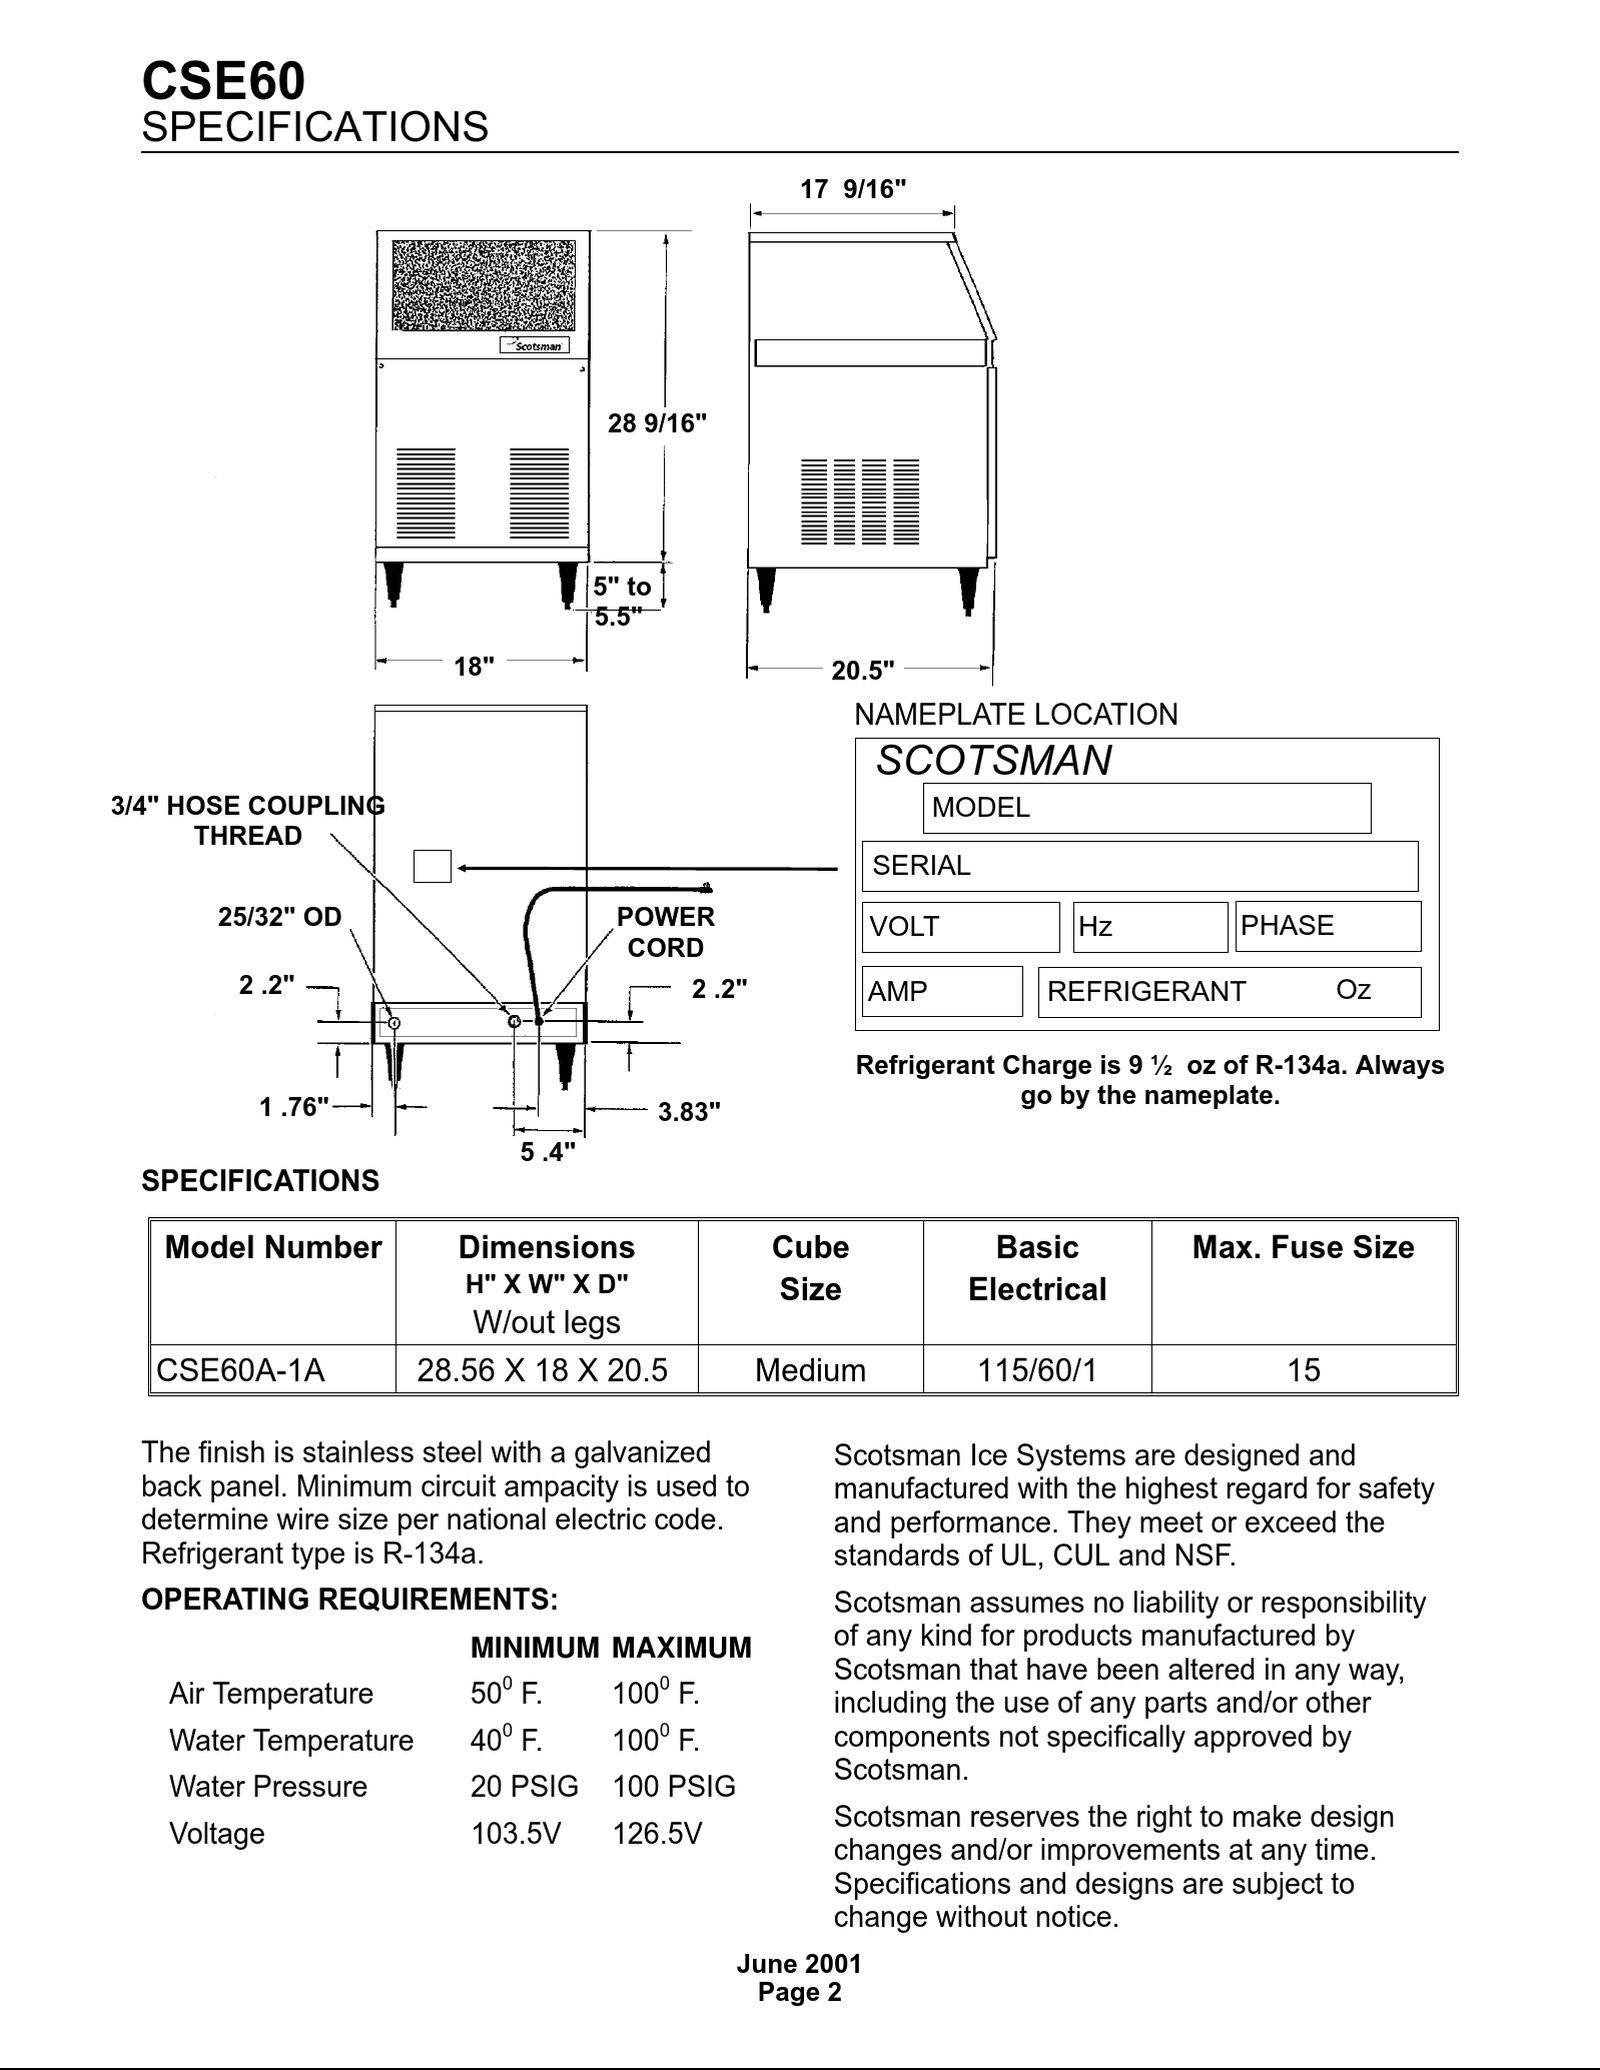 Wiring Diagram For Kitchenaid Ice Maker Refrigerator Circuit Board Scotsman Machine Sle